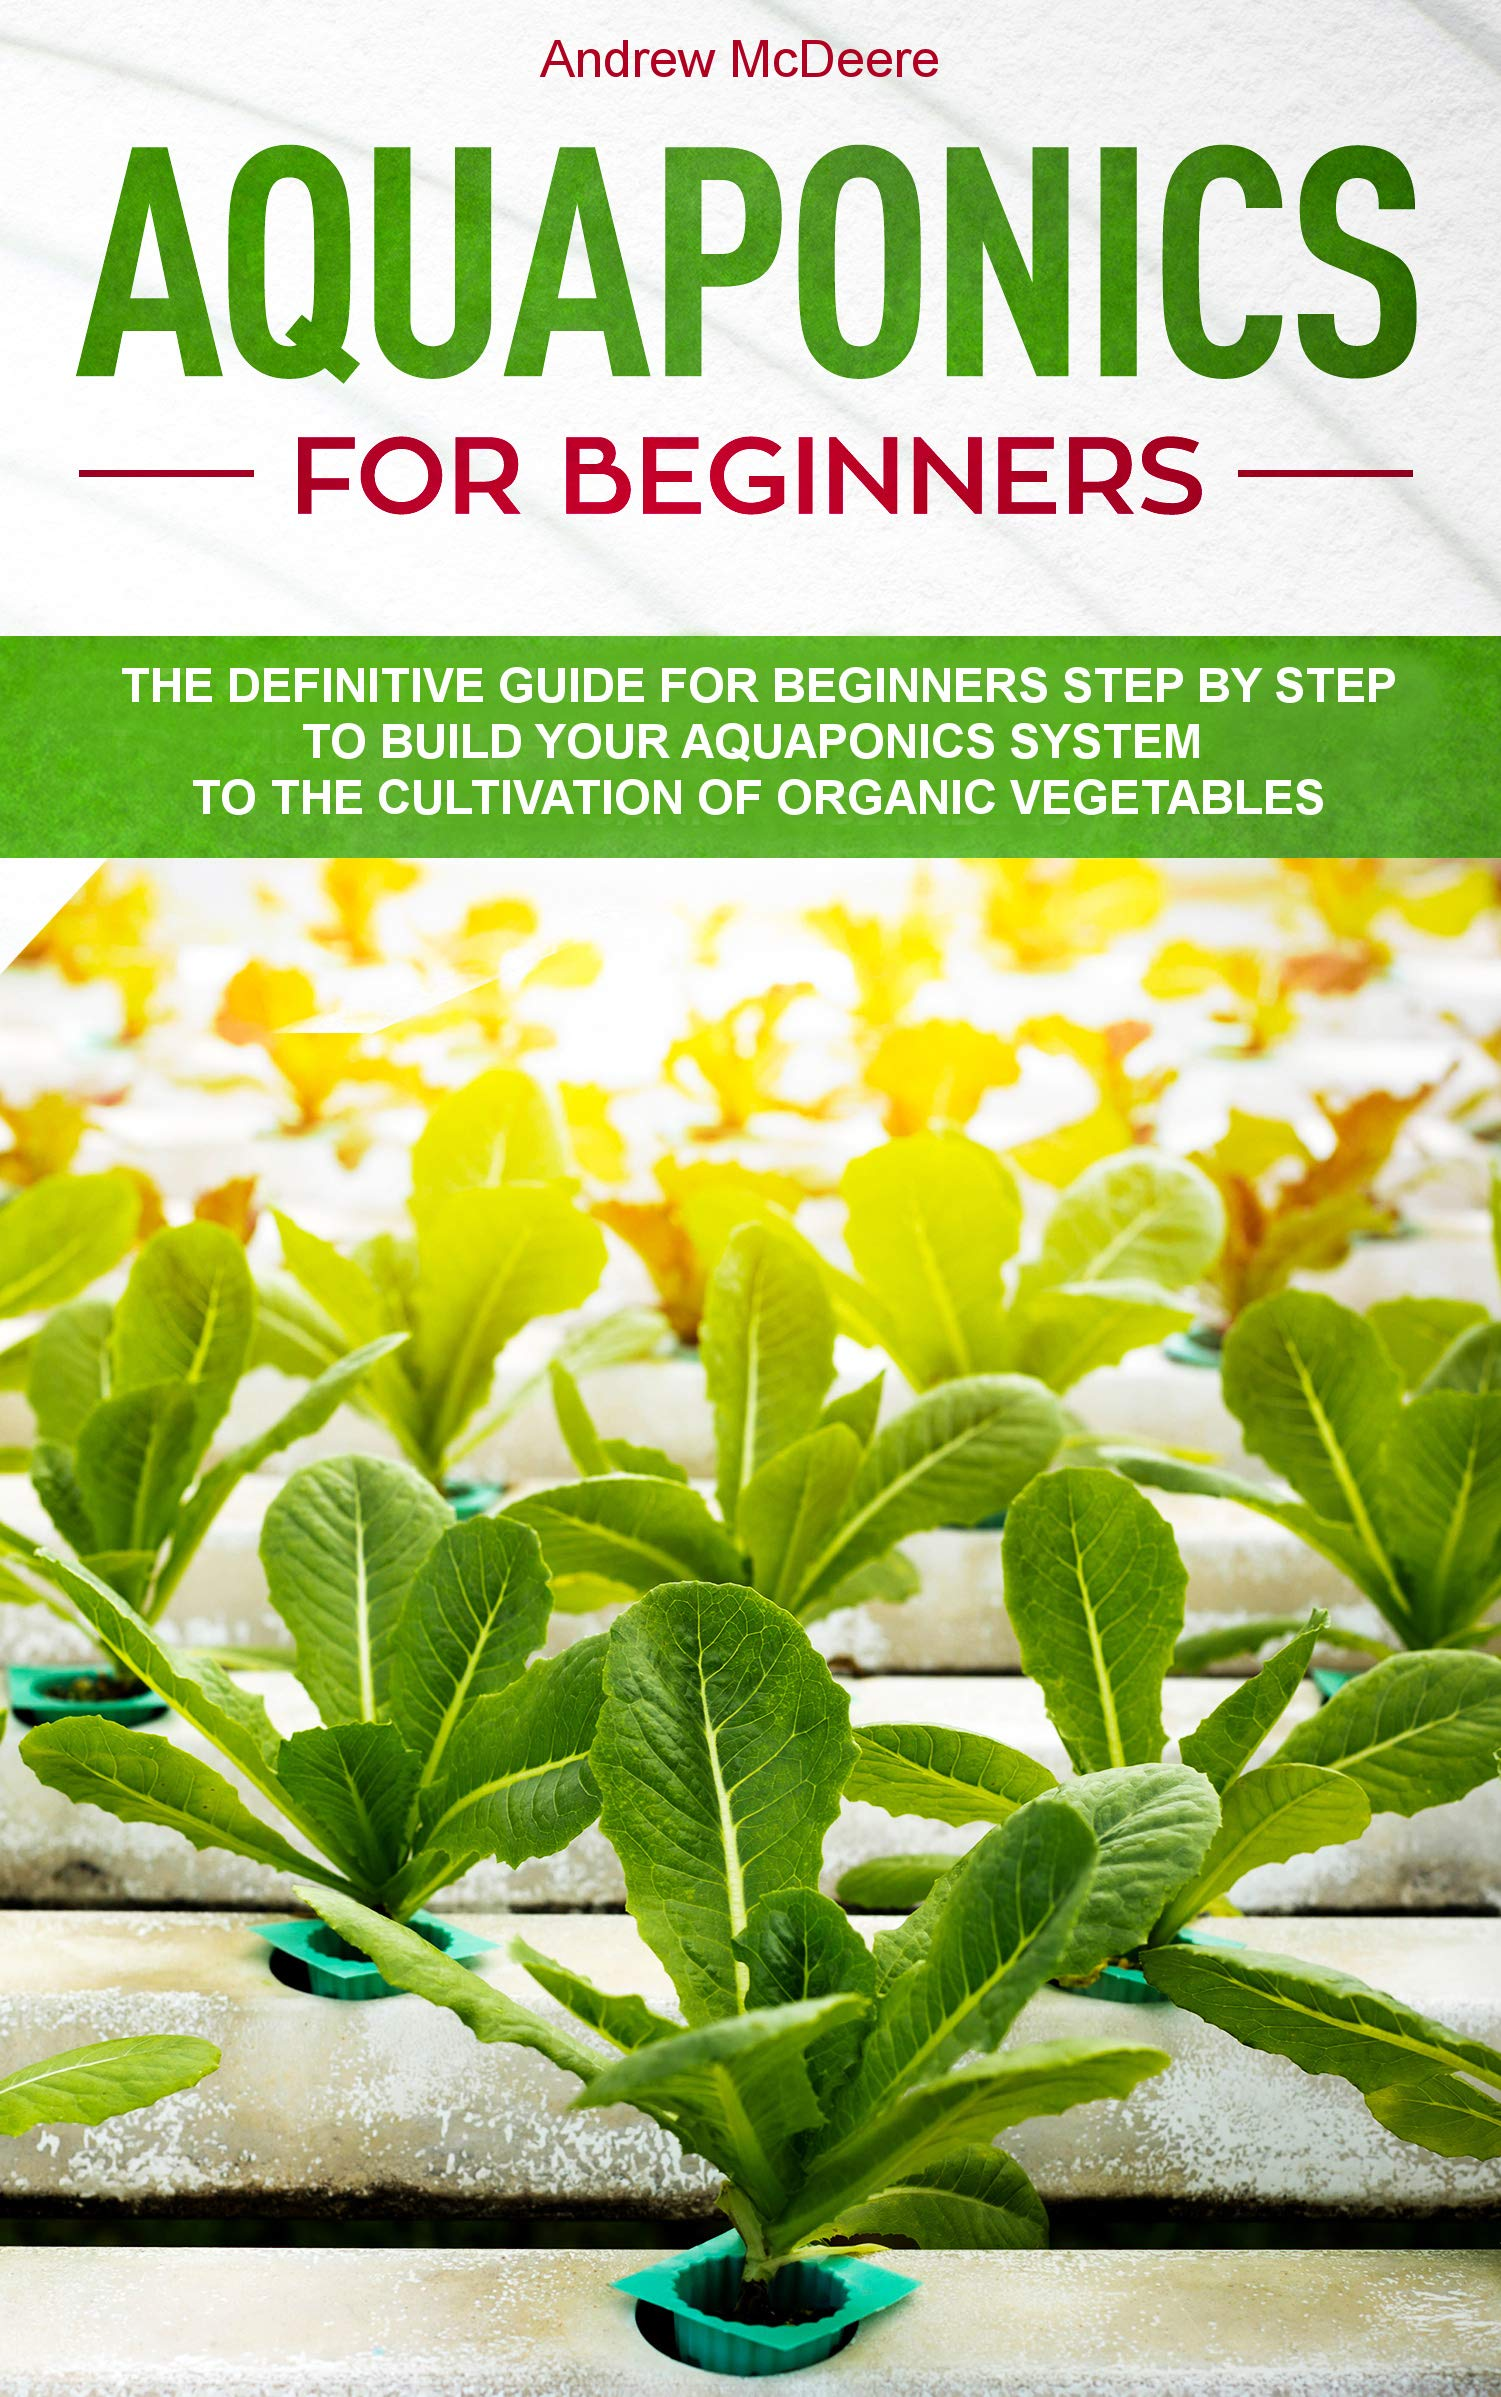 Aquaponics For Beginners  The New Complete Aquaponic Book For Beginners Ilustrated Step By Step How To Build An Aquaponic System To Grow Organic Vegetables Plants And Fish Together  English Edition